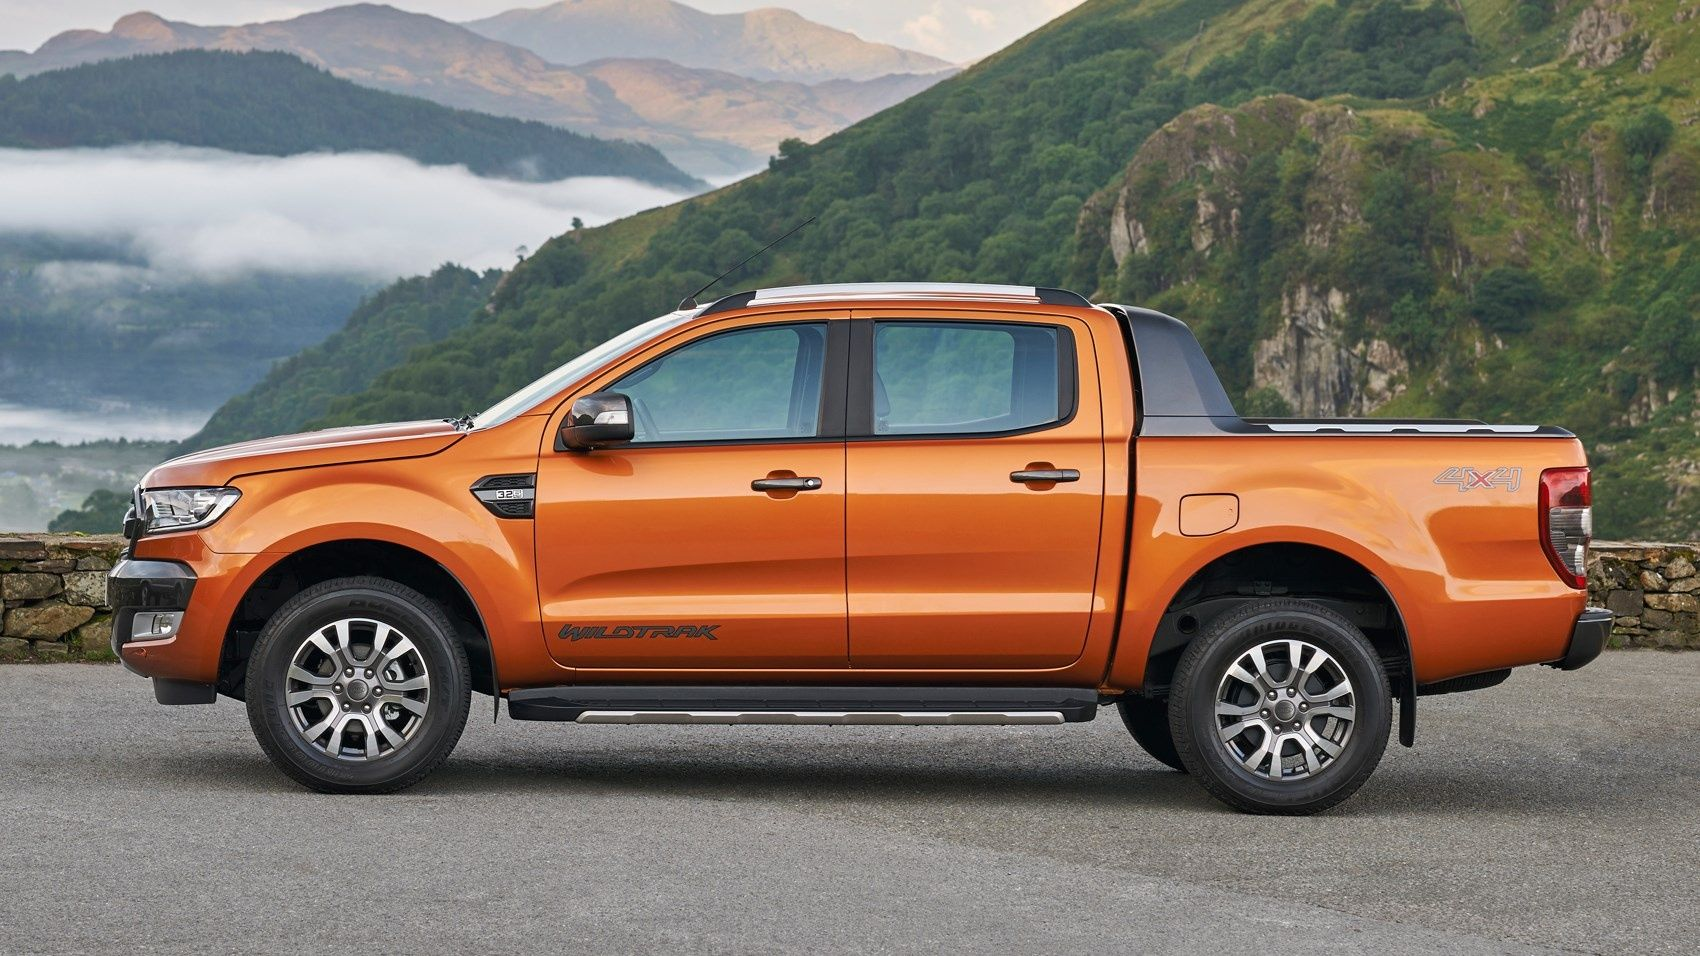 20152016 Ford Ranger PX MKII, OEM Service and